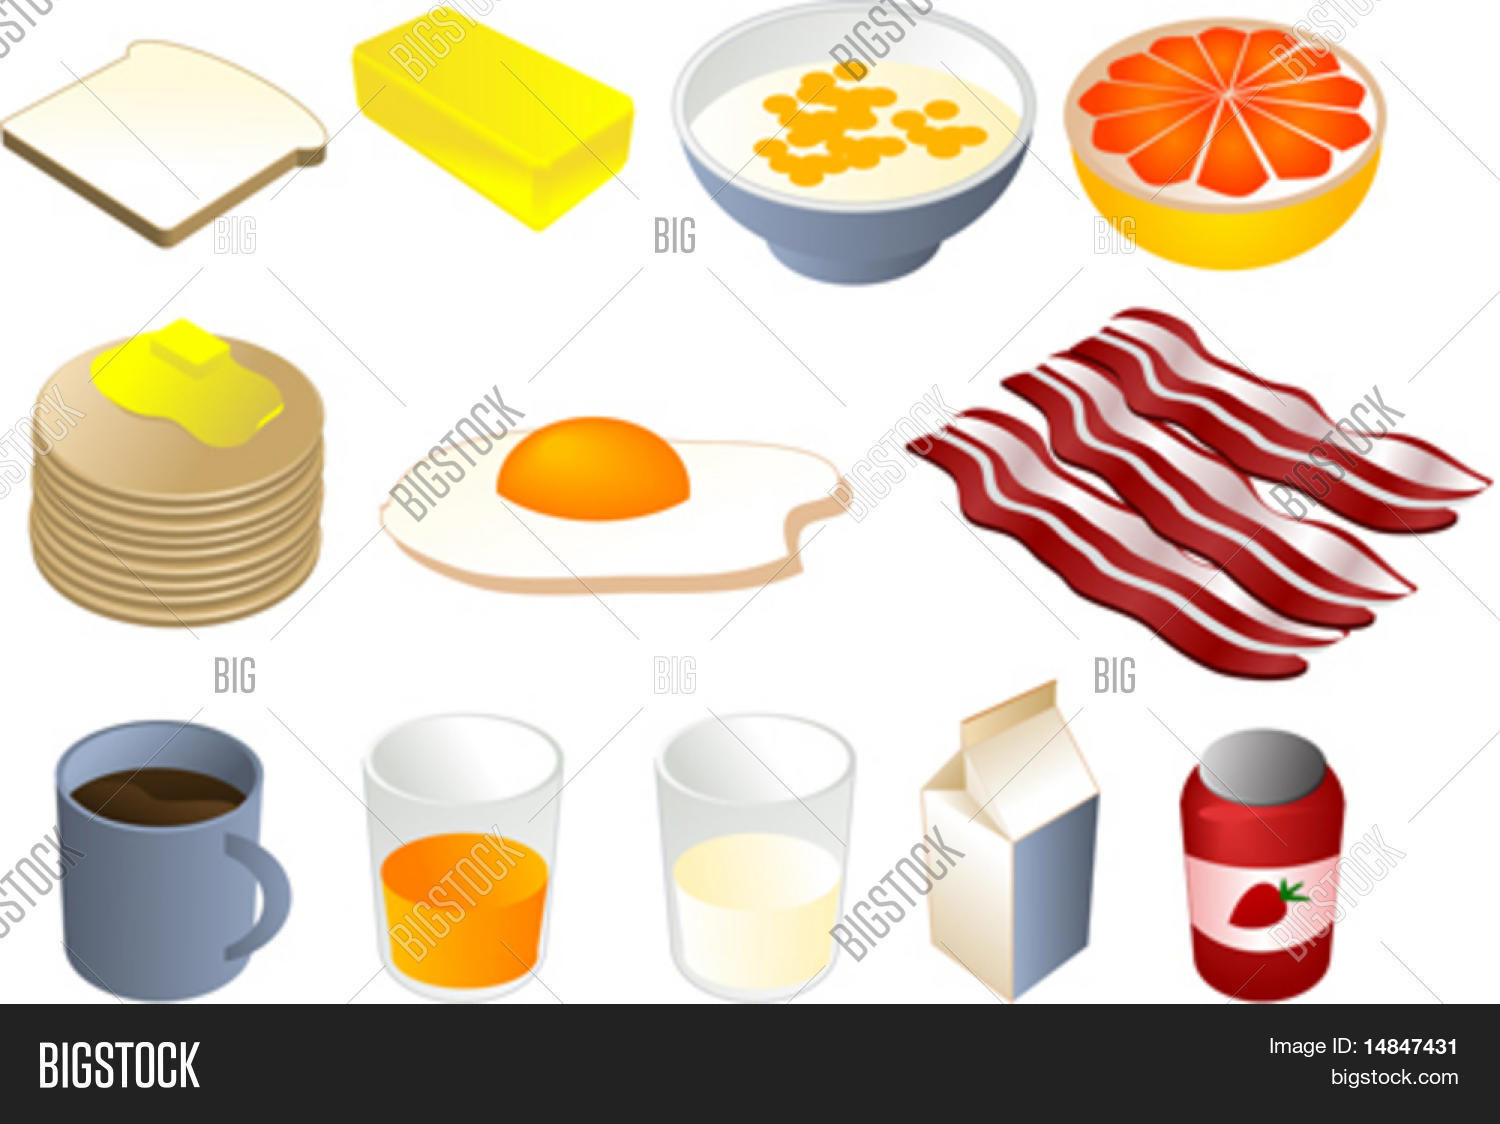 1500x1124 Bread Clipart Coffe